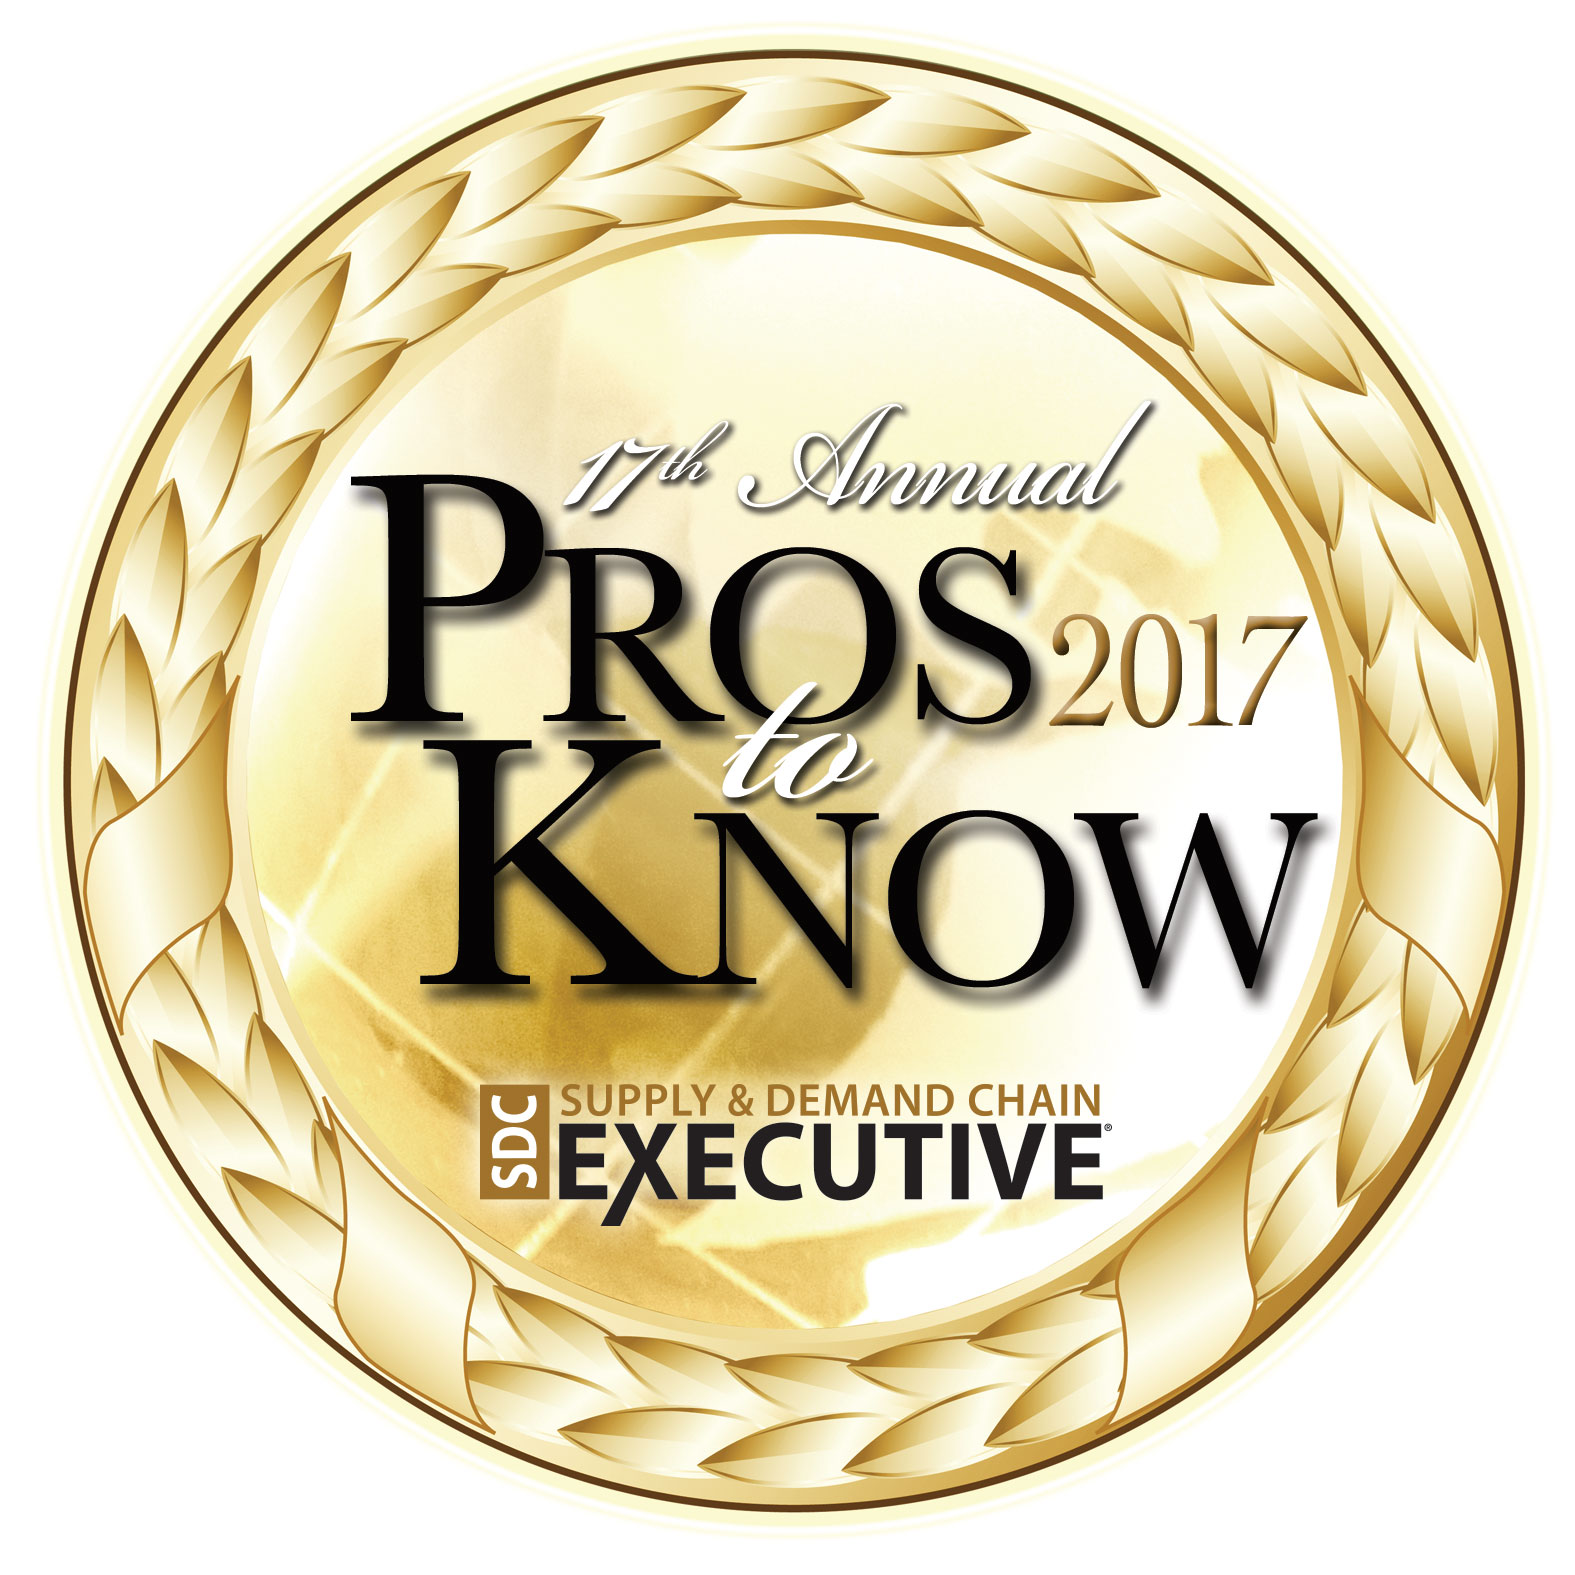 Supply & Demand Chain Executive Names Synergy's CEO as a 2017 Pro to Know